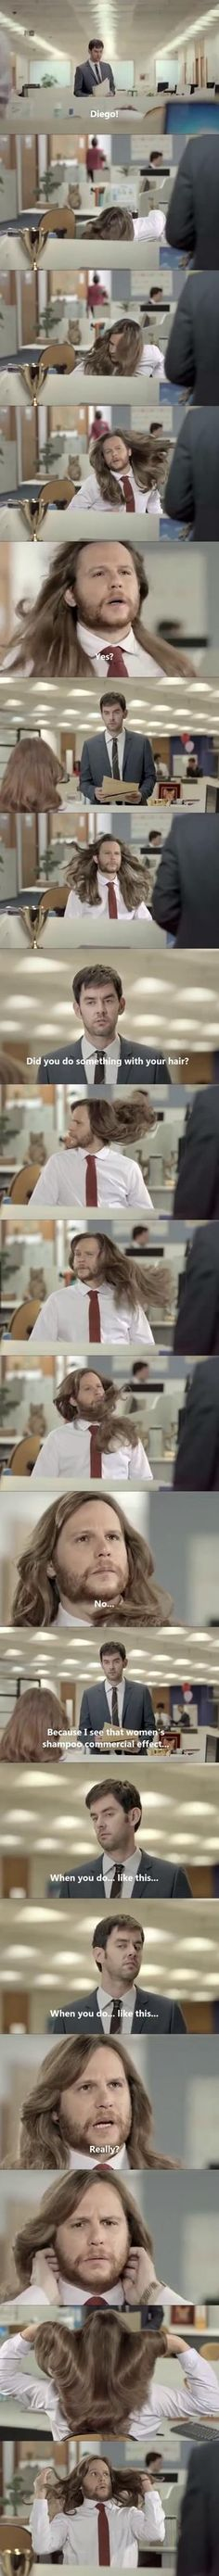 When men use women's shampoo.